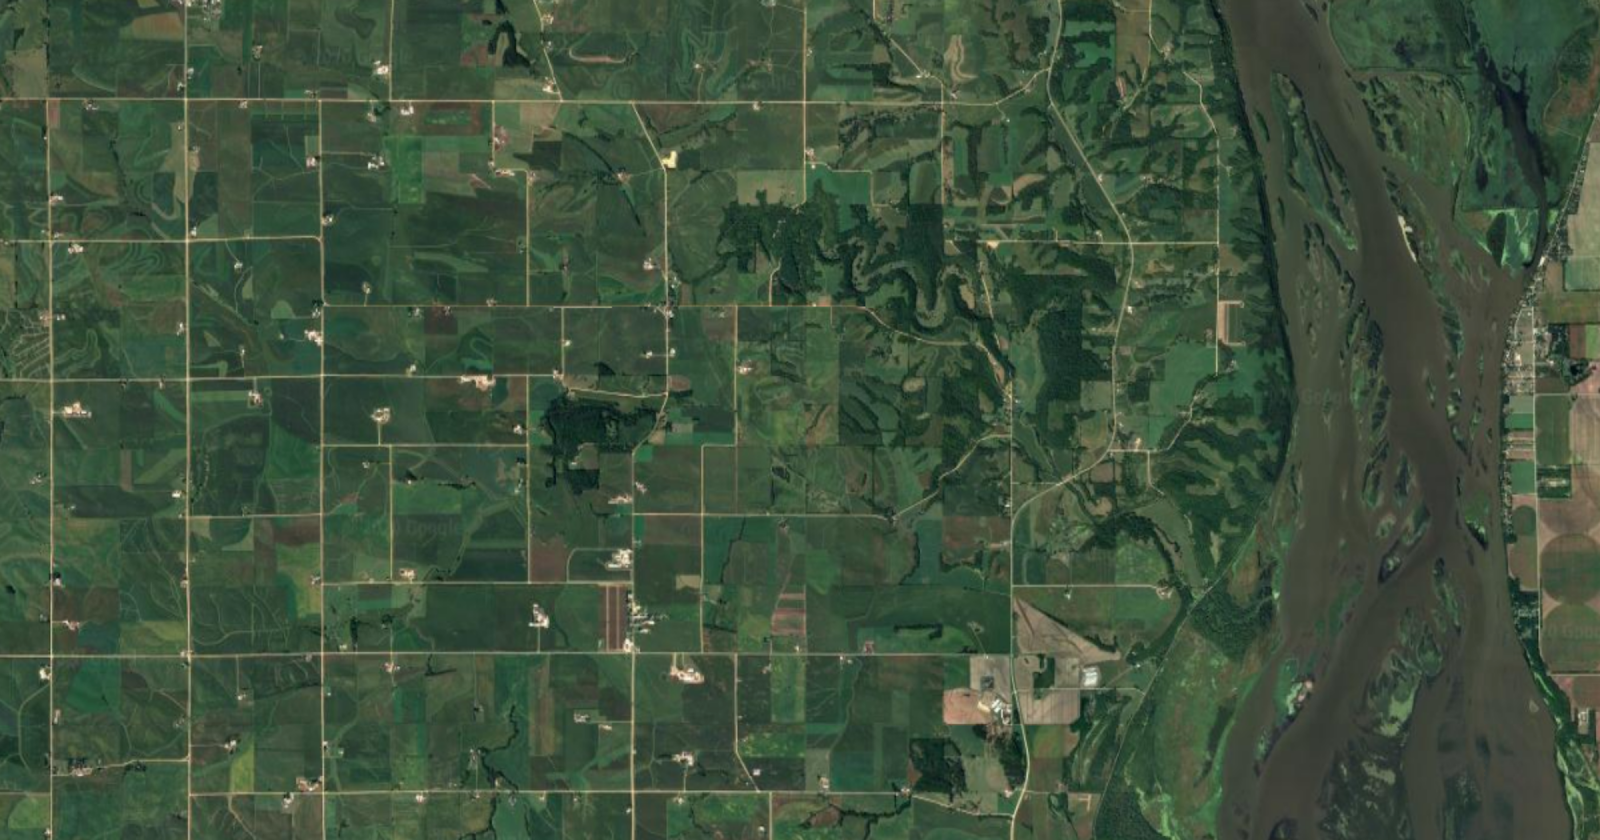 An arial view of some green pastures, mountains, rivers, and roads.